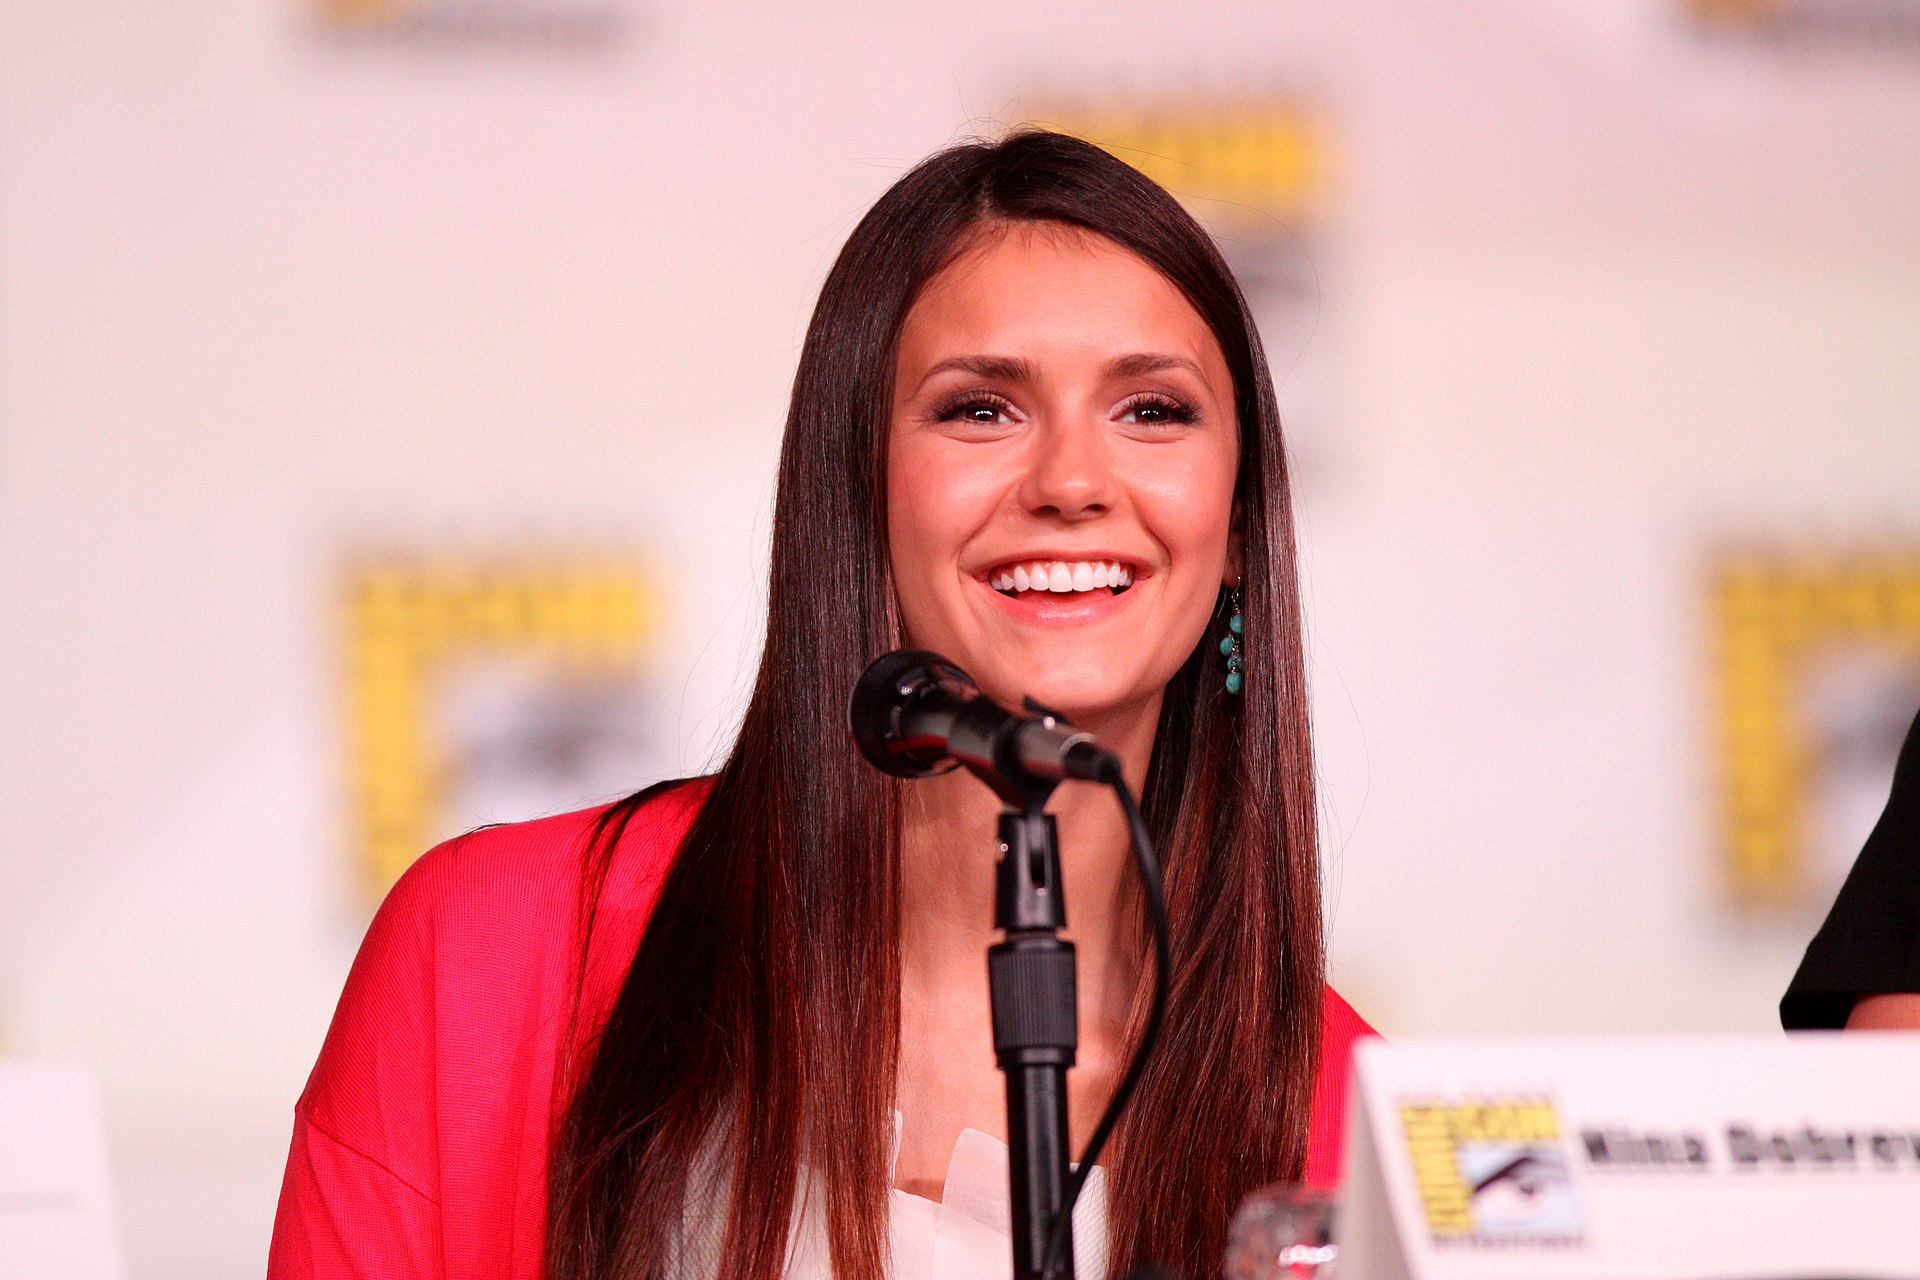 Nina dobrev the vampire diaries s05e16 2014 - 2 2